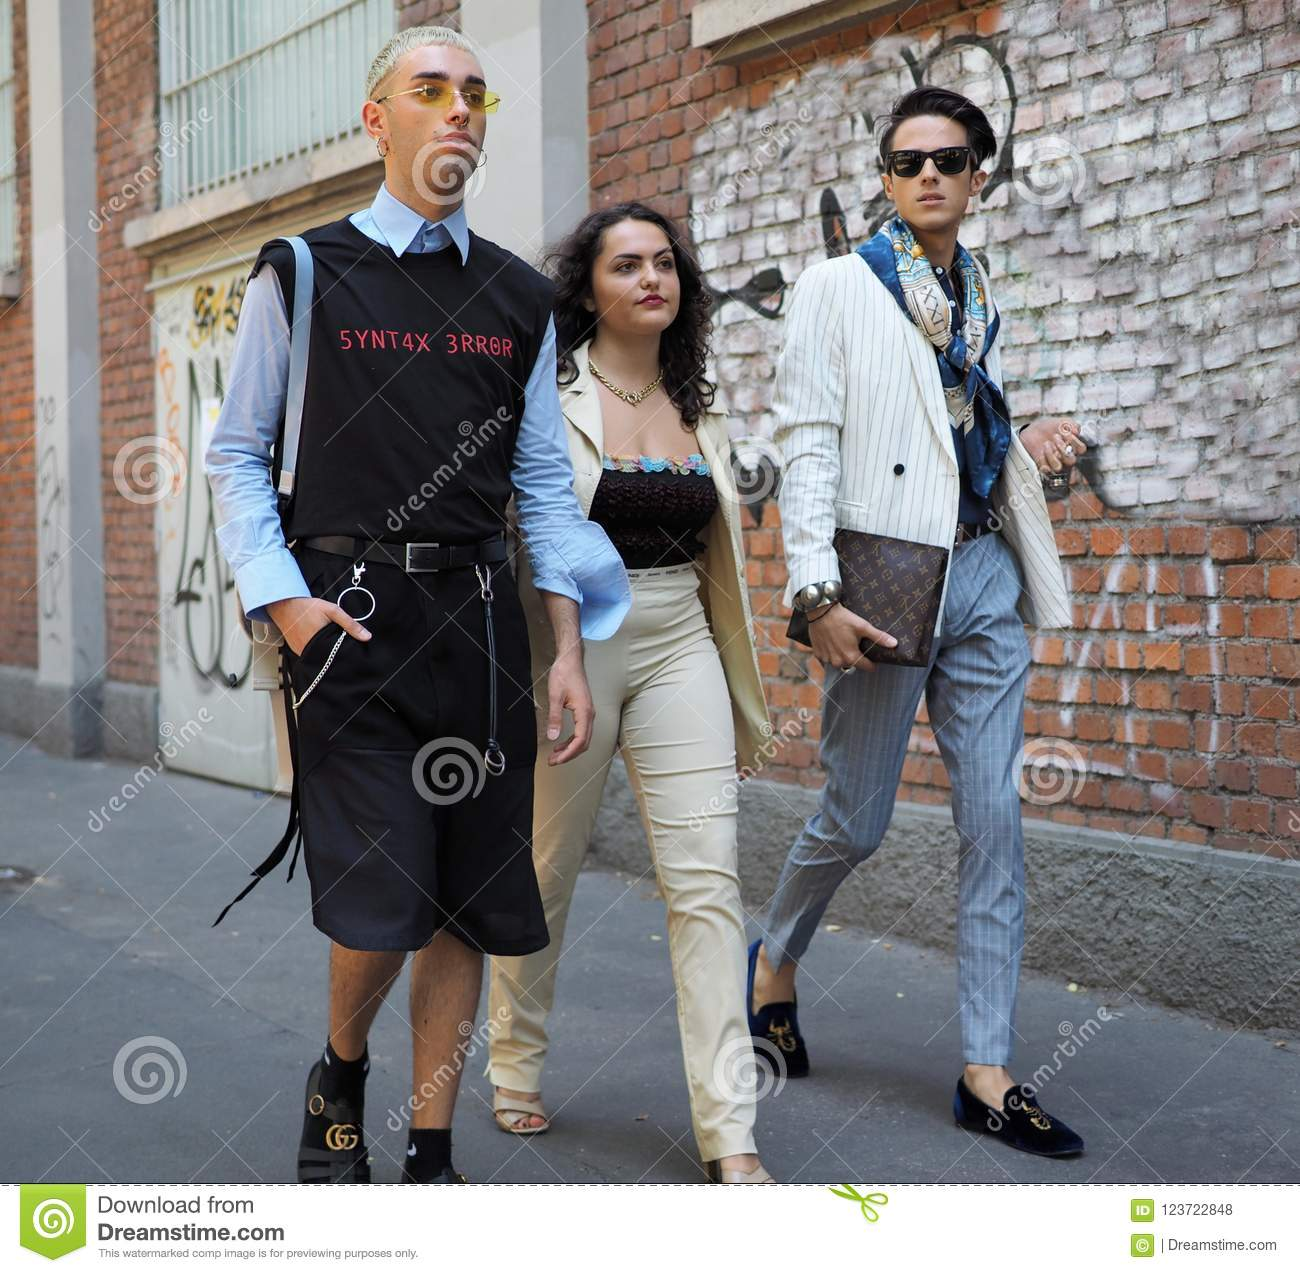 MILAN, ITALY -JUNE 18, 2018: Fashionable people walking in the street before FENDI fashion show